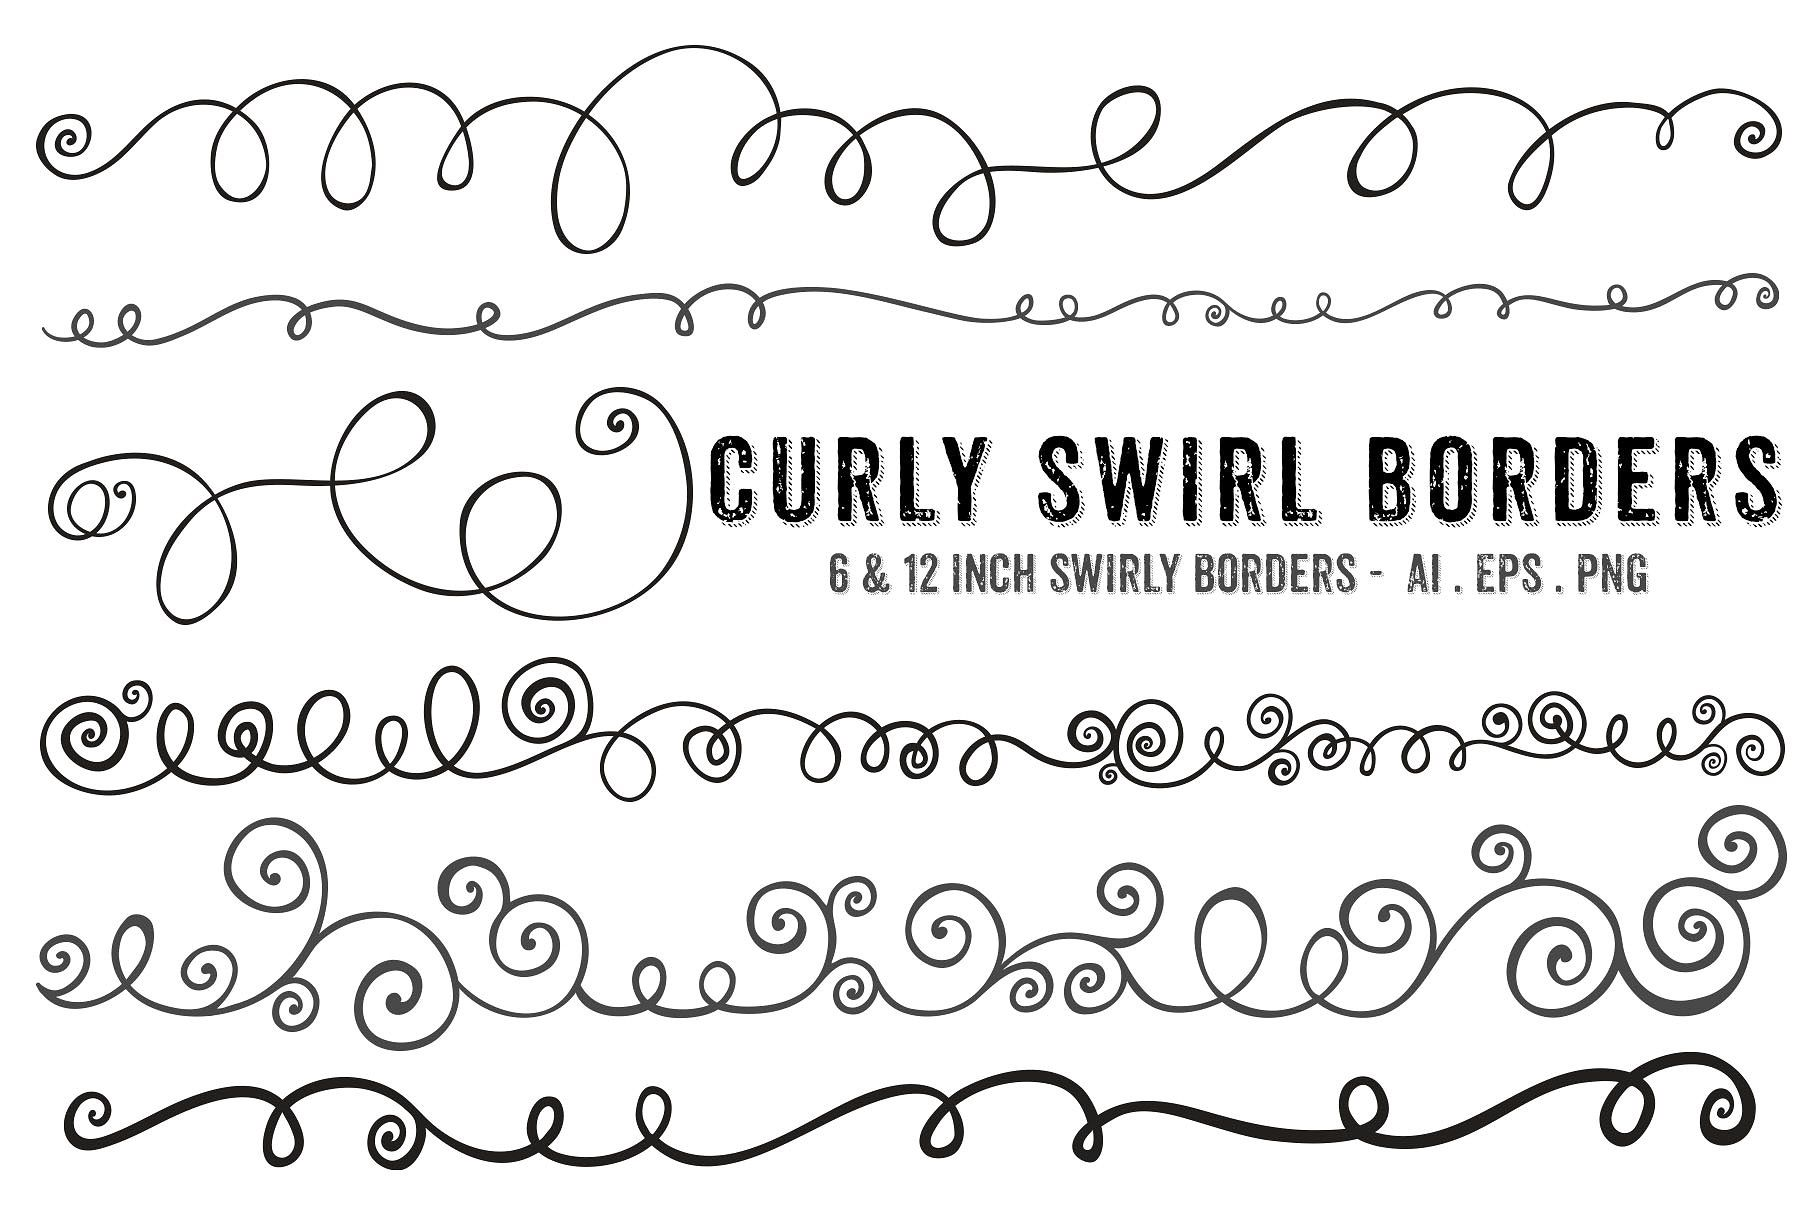 Swirl Border Clipart Cliparts Of Swirl Border Free Download Wmf Eps Emf Svg Png Gif Formats Clip Art Borders Clip Art Free Clip Art